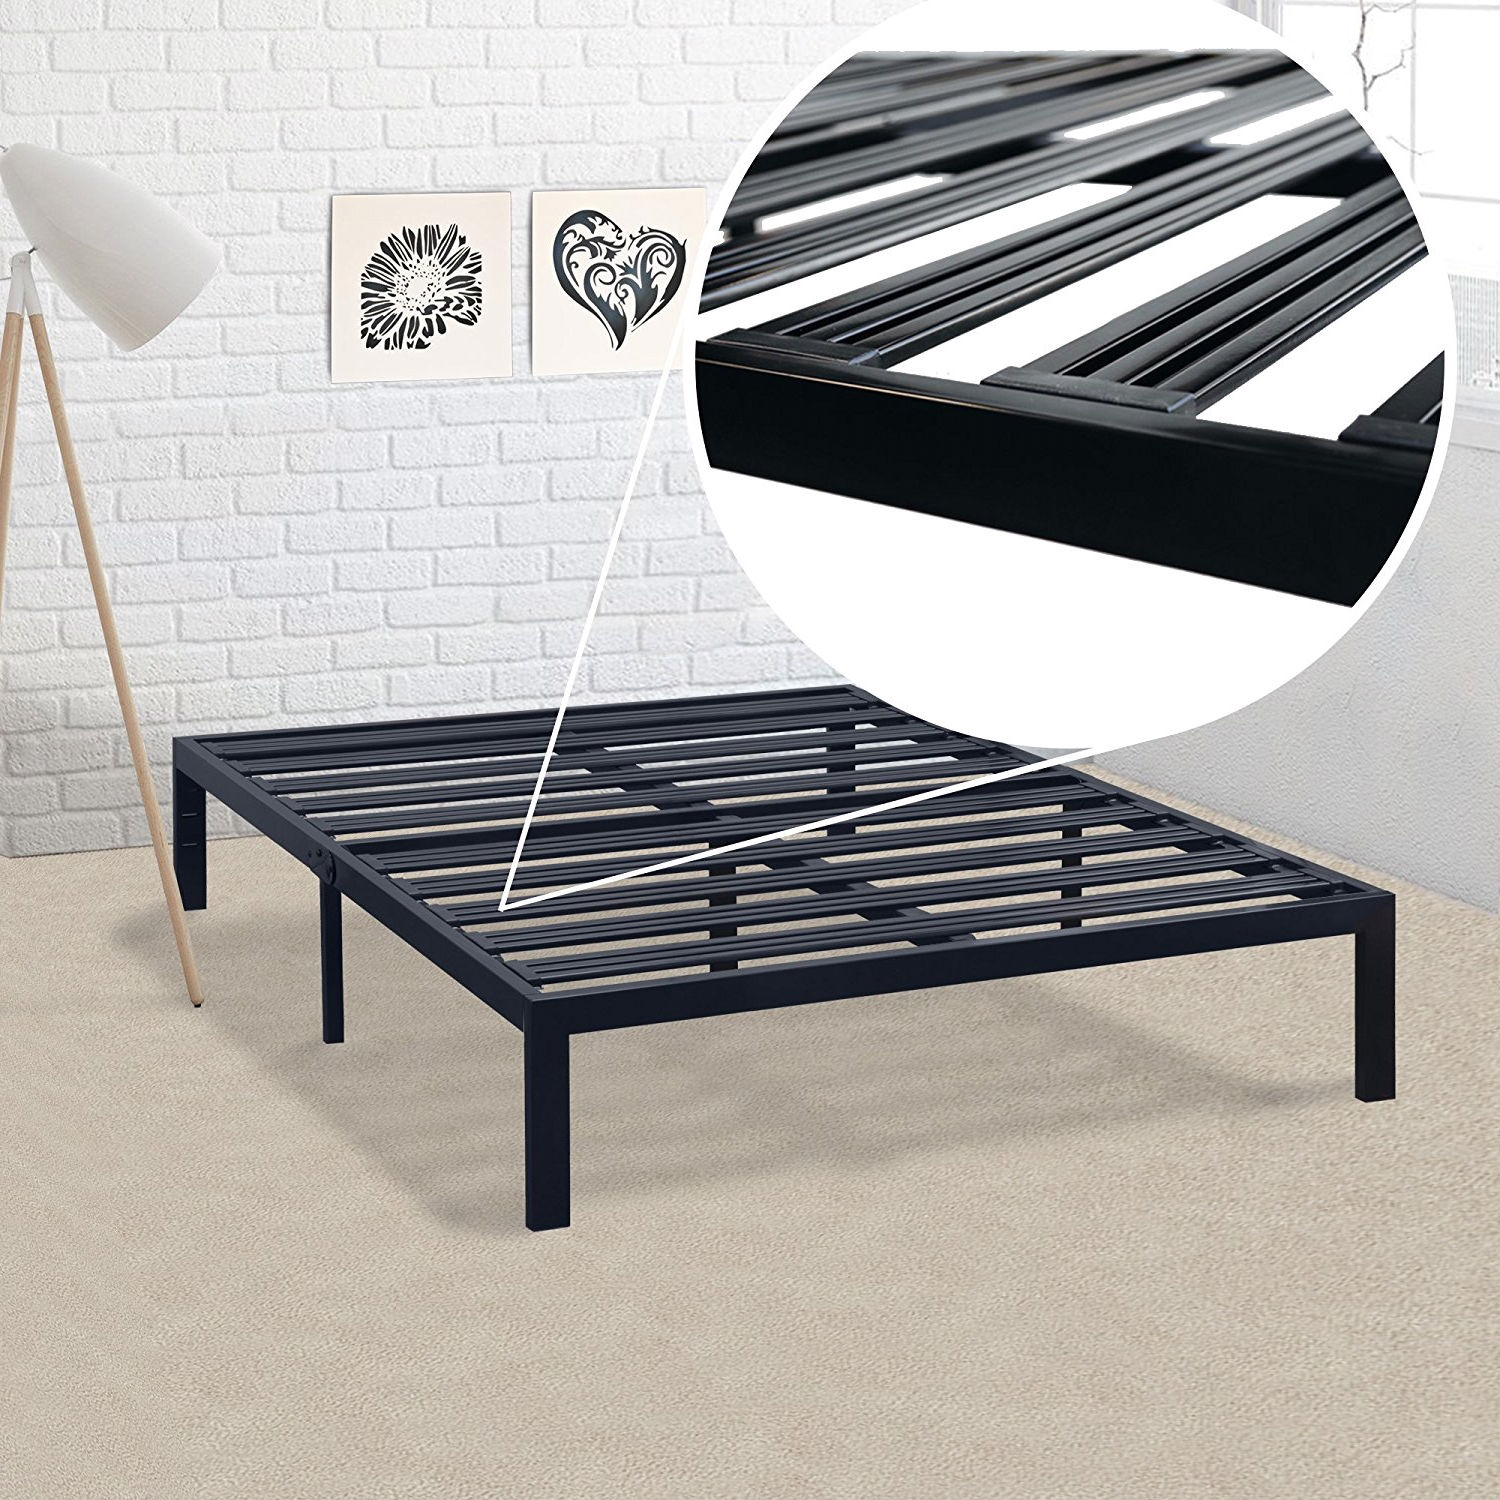 Full size Metal Platform Bed Frame with 386 inch Wide Heavy Duty